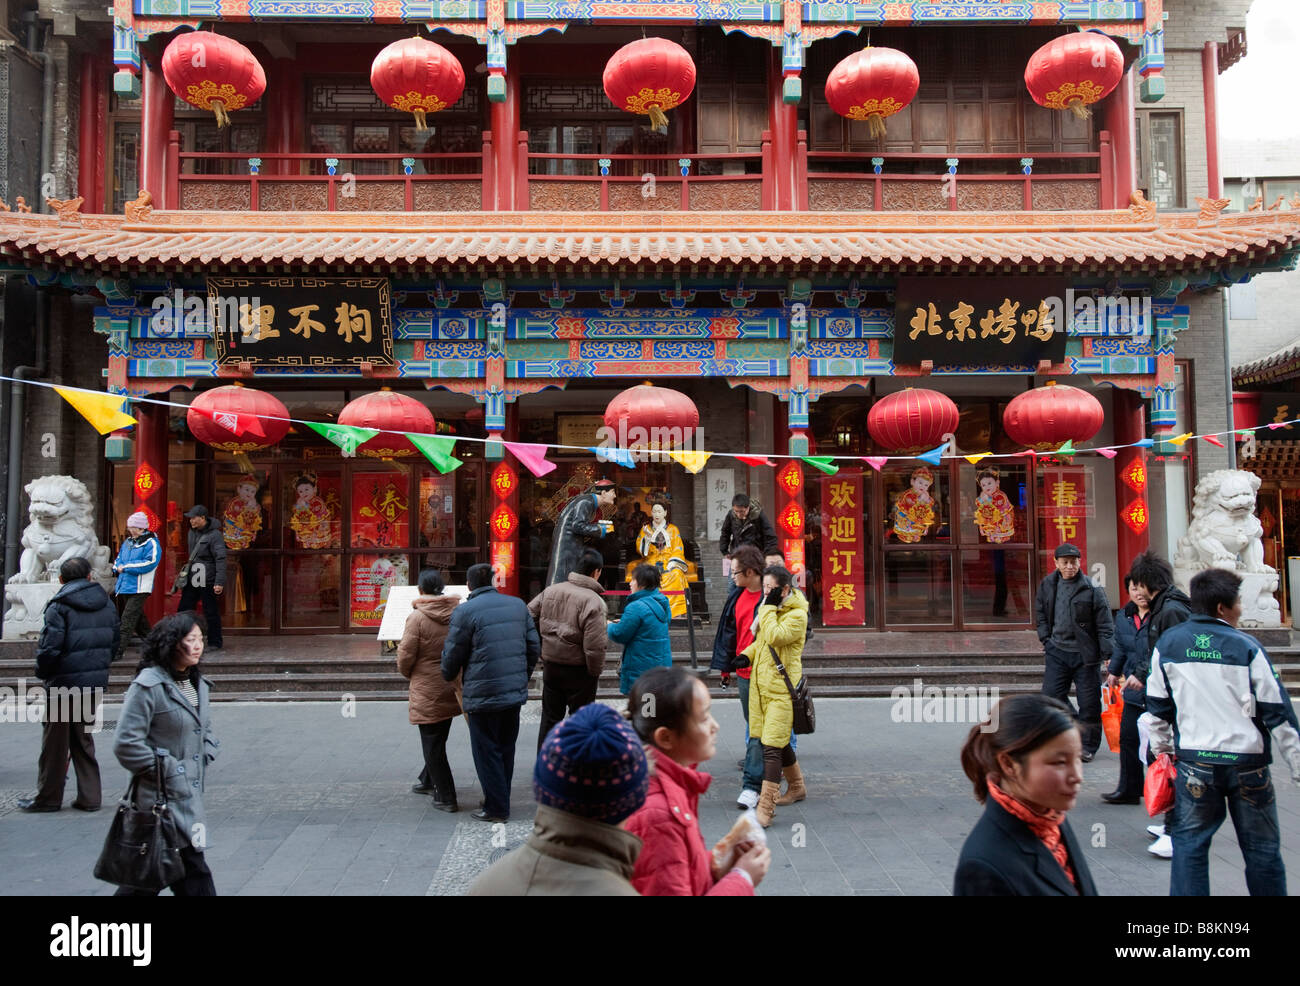 Busy street and traditional building with red lanterns in Dashilan district of Beijing - Stock Image